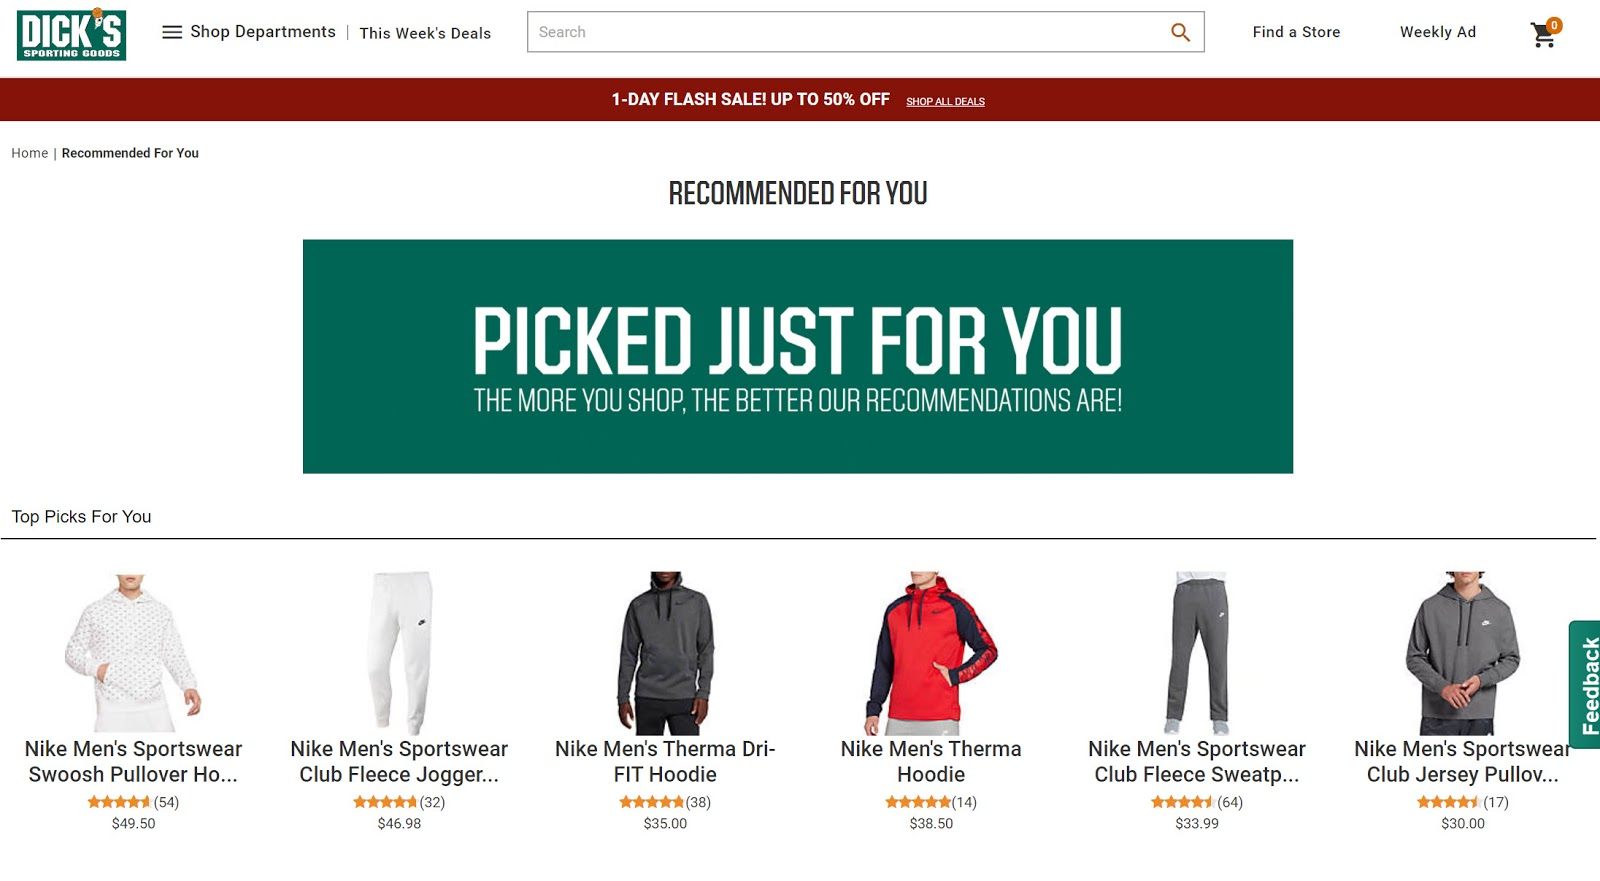 Different item recommendations on Dick's Sporting Goods website